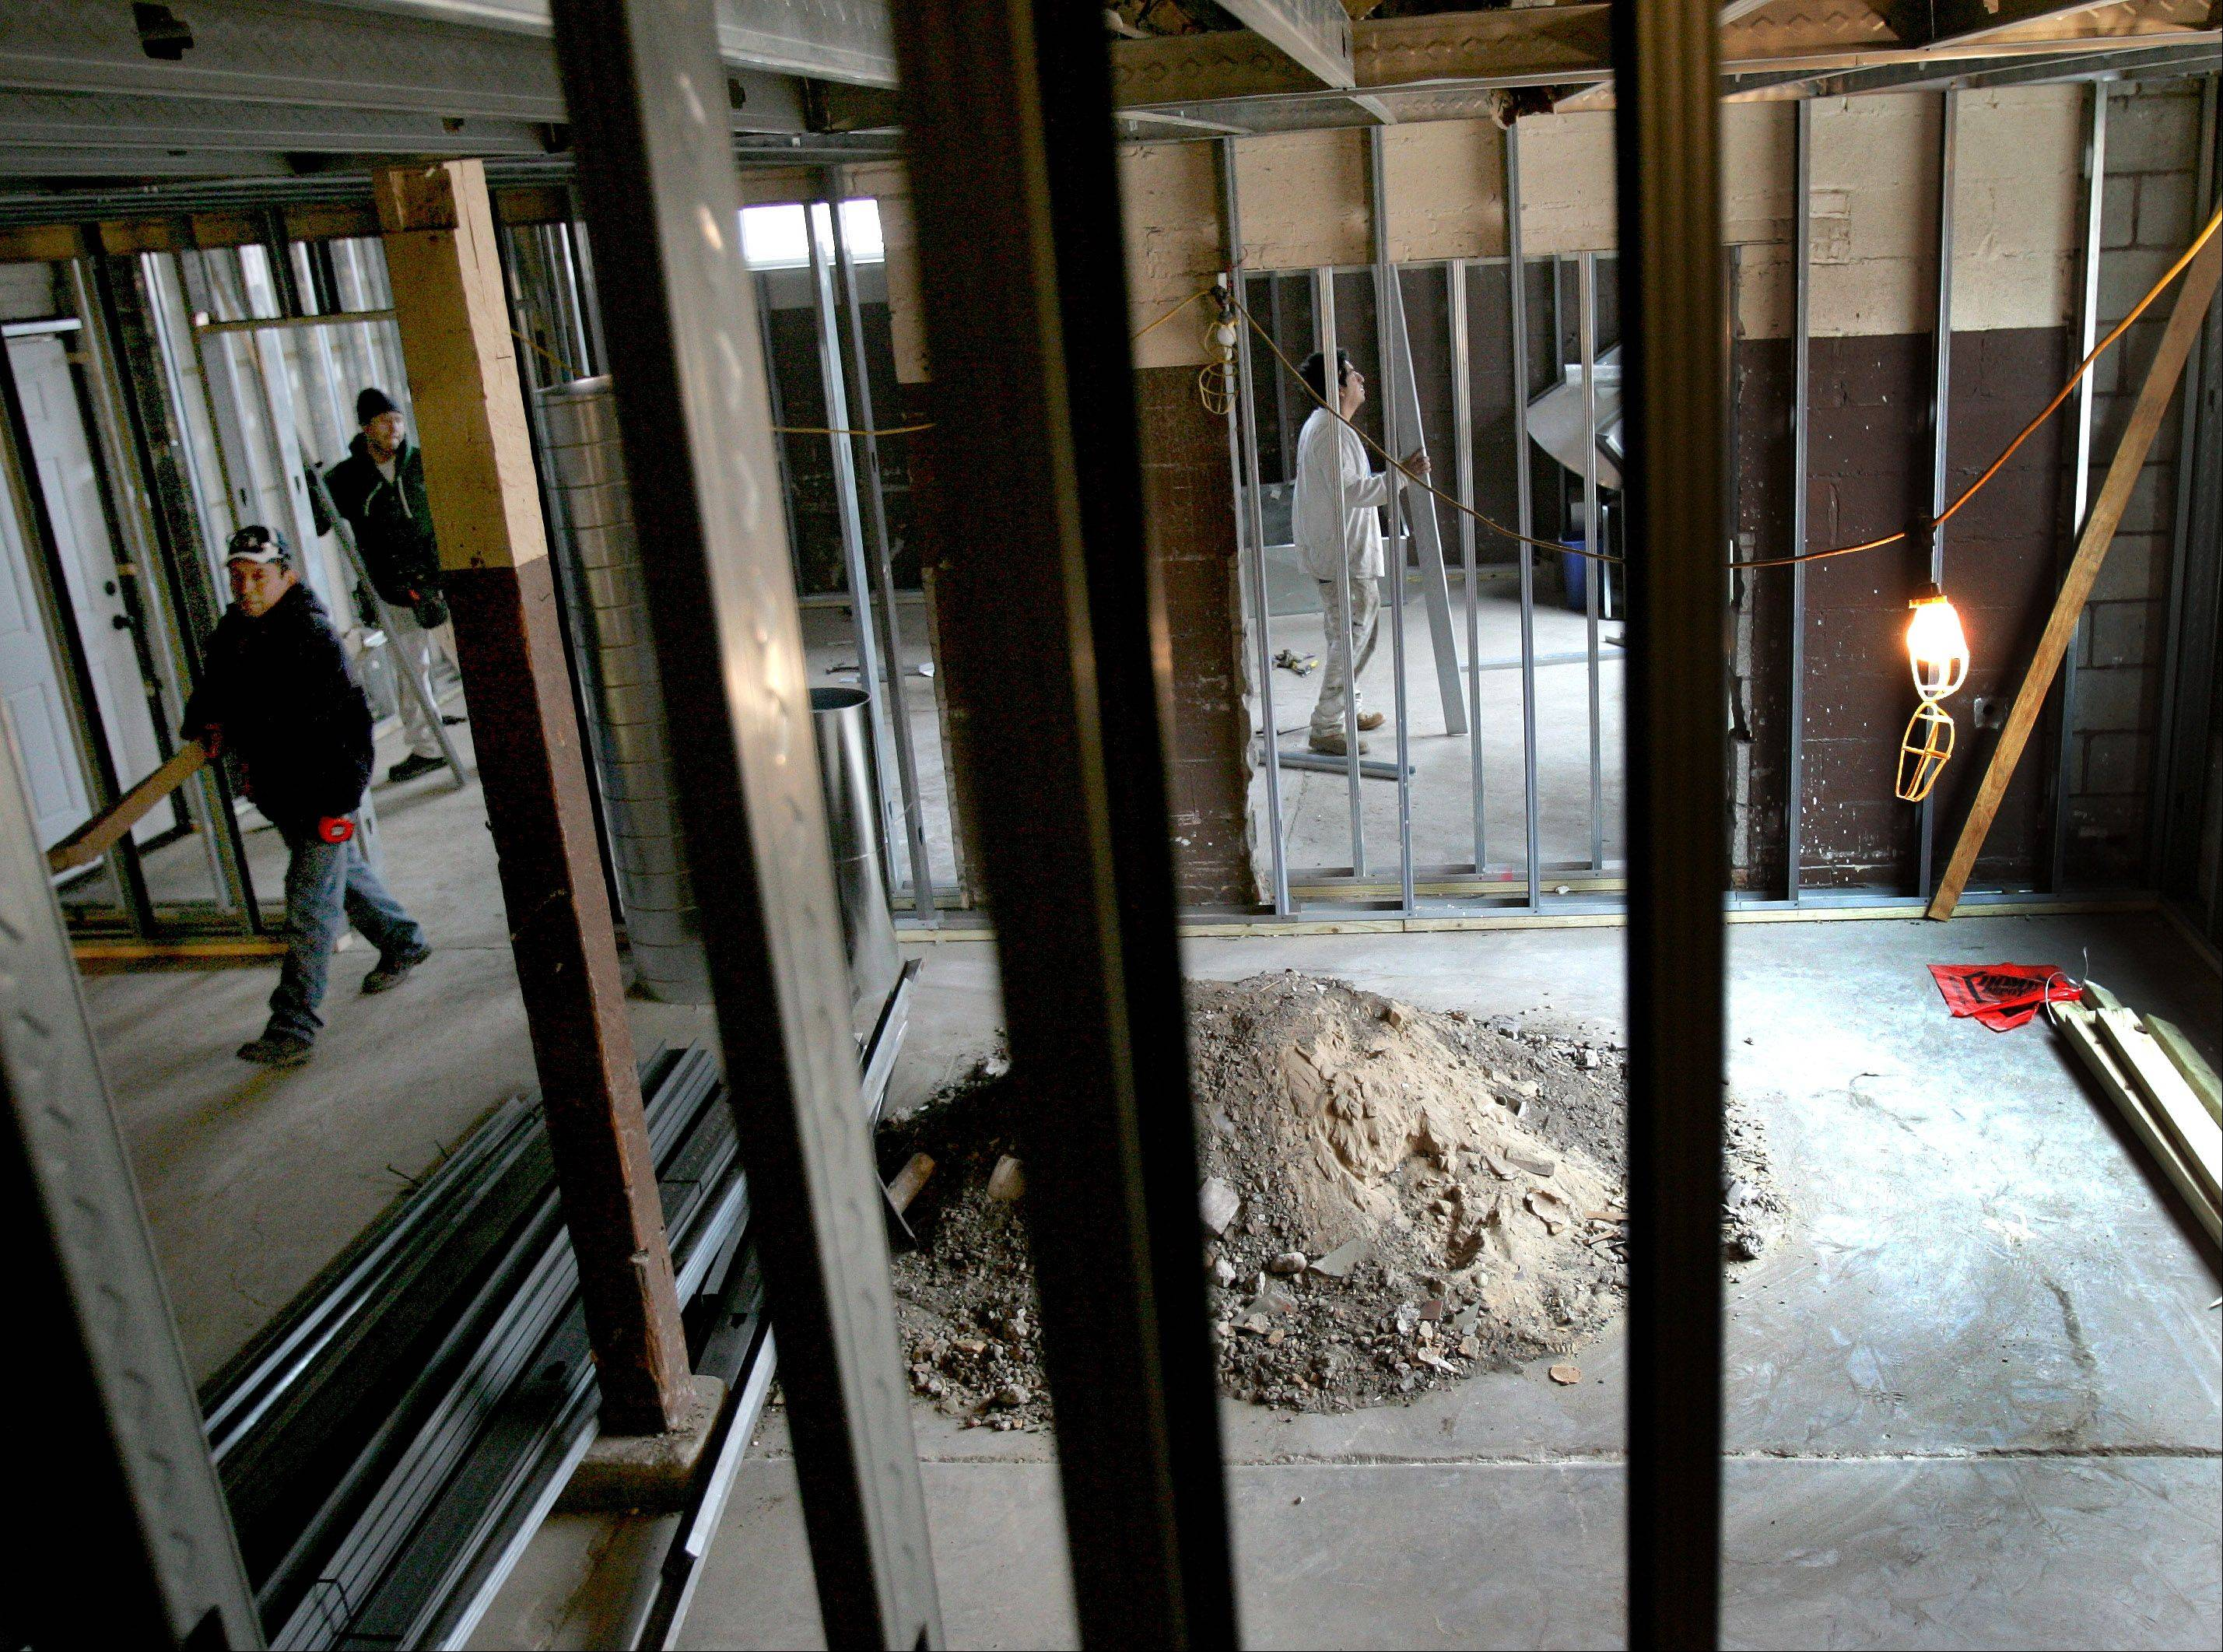 Workers are preparing the building at the northwest corner of Park Avenue and St. Charles Road in downtown Lombard to become The Corner House coffee shop by March or April.